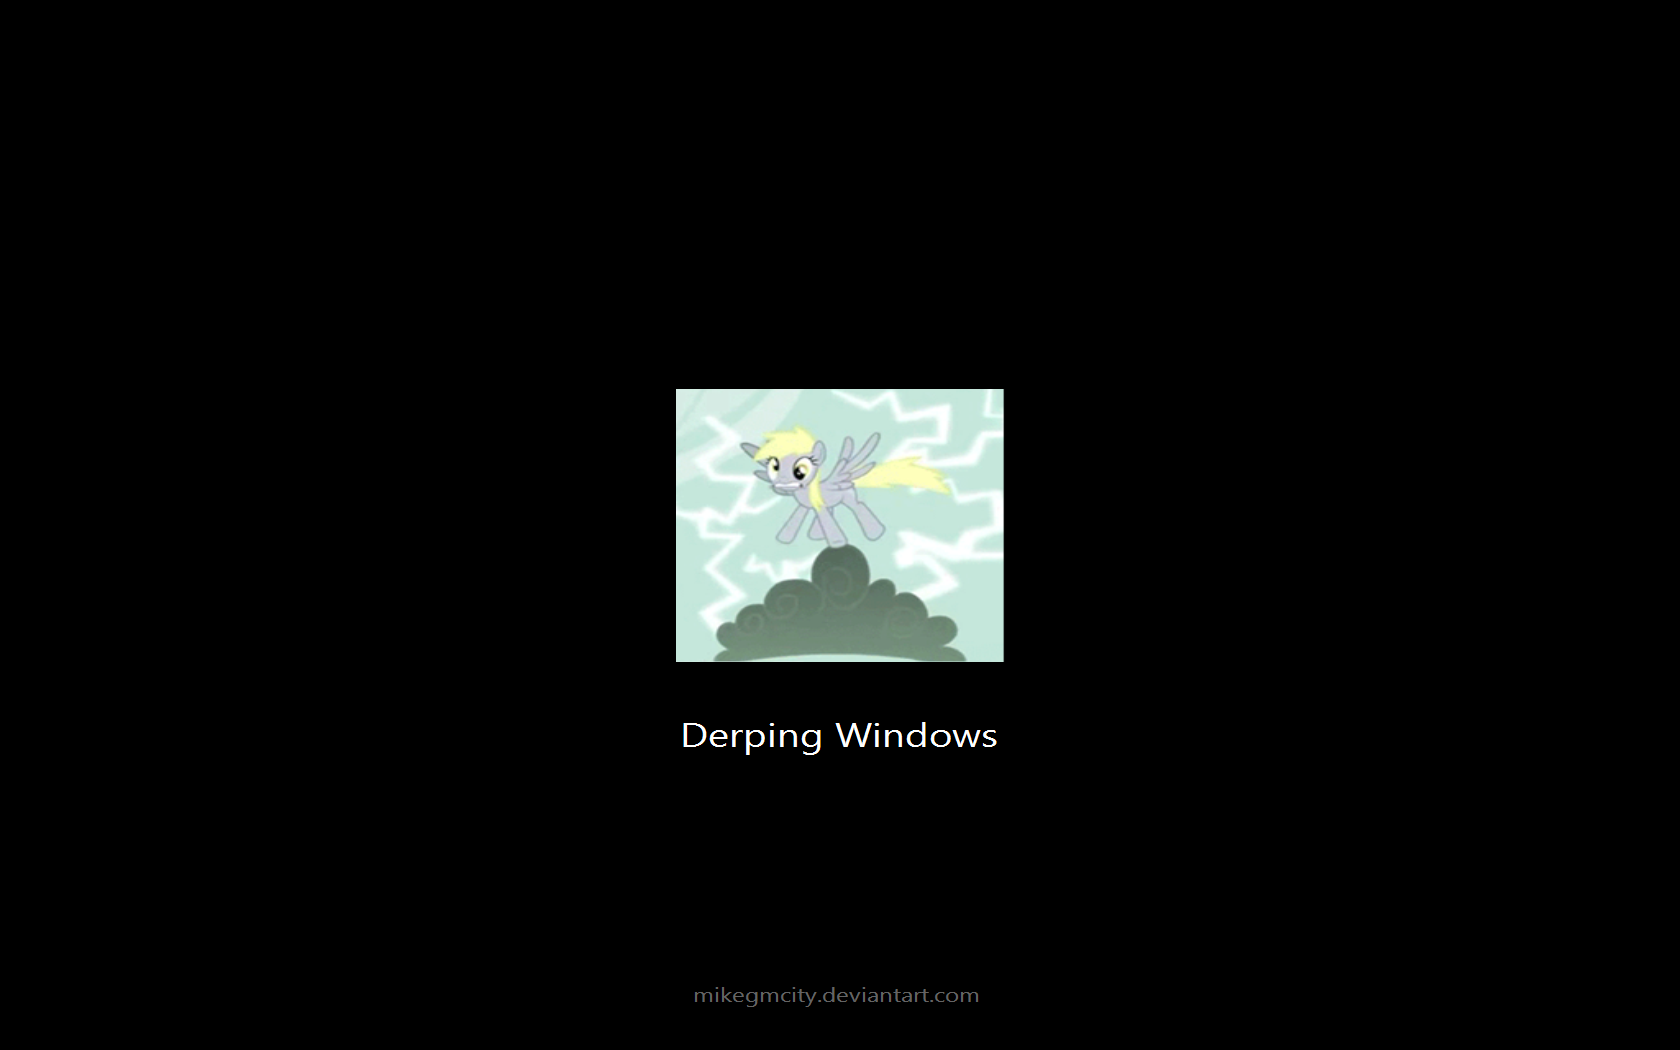 derpy windows 7 boot theme v1 by mikegmcity on deviantart